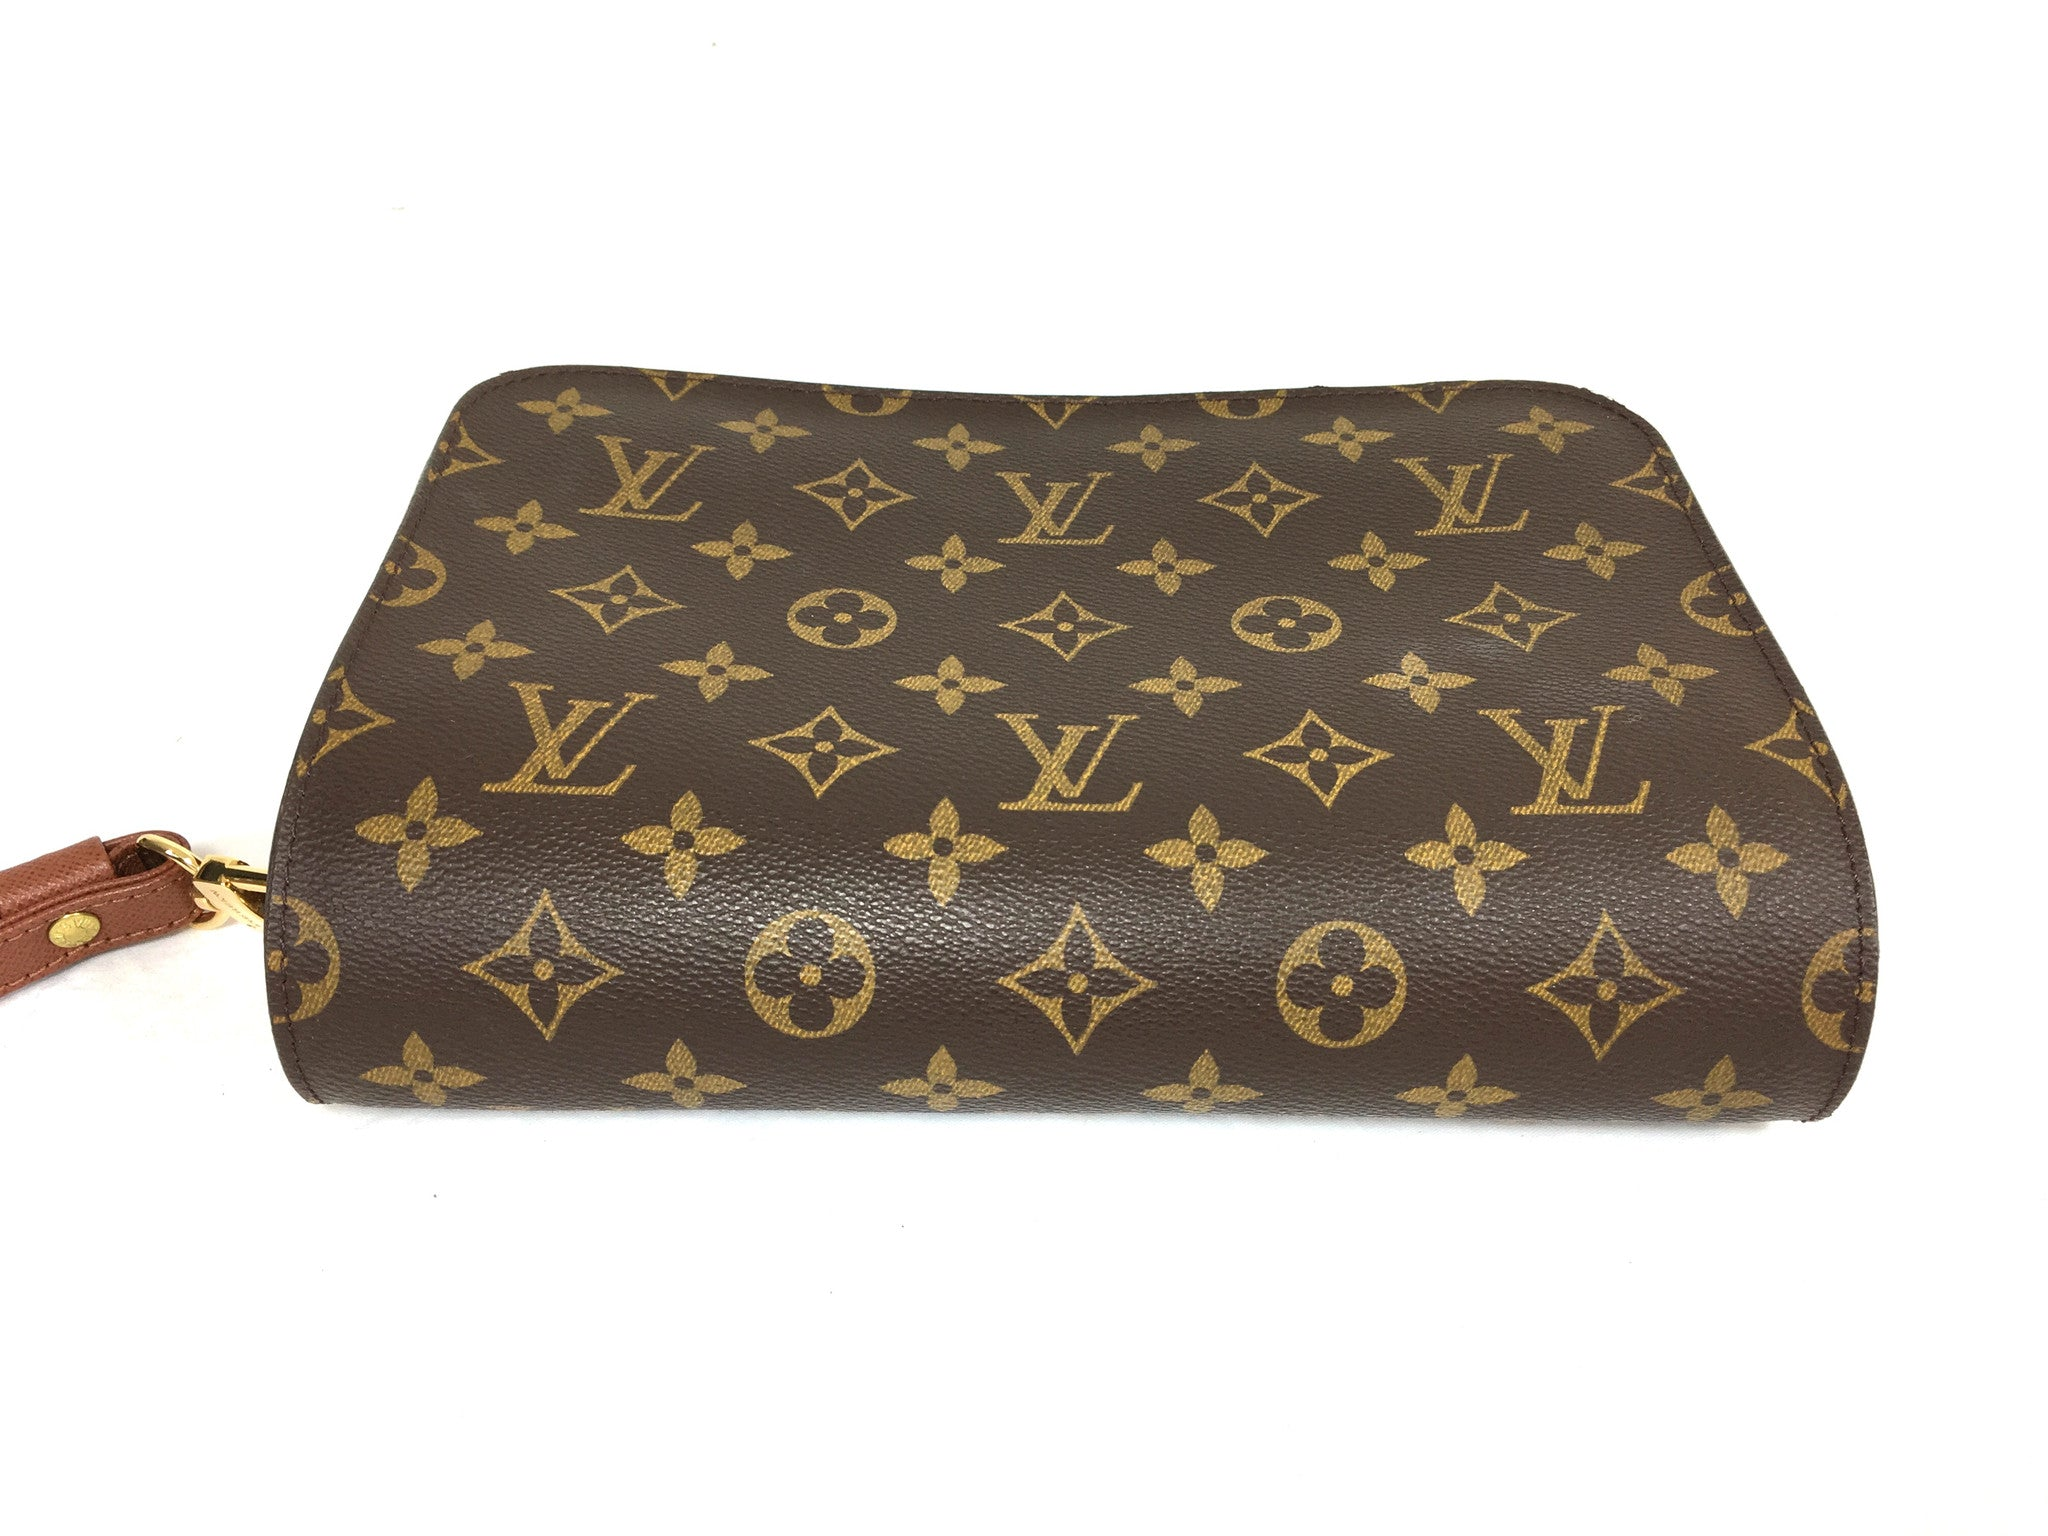 LOUIS VUITTON Monogram Orsay Unisex Clutch Wristlet